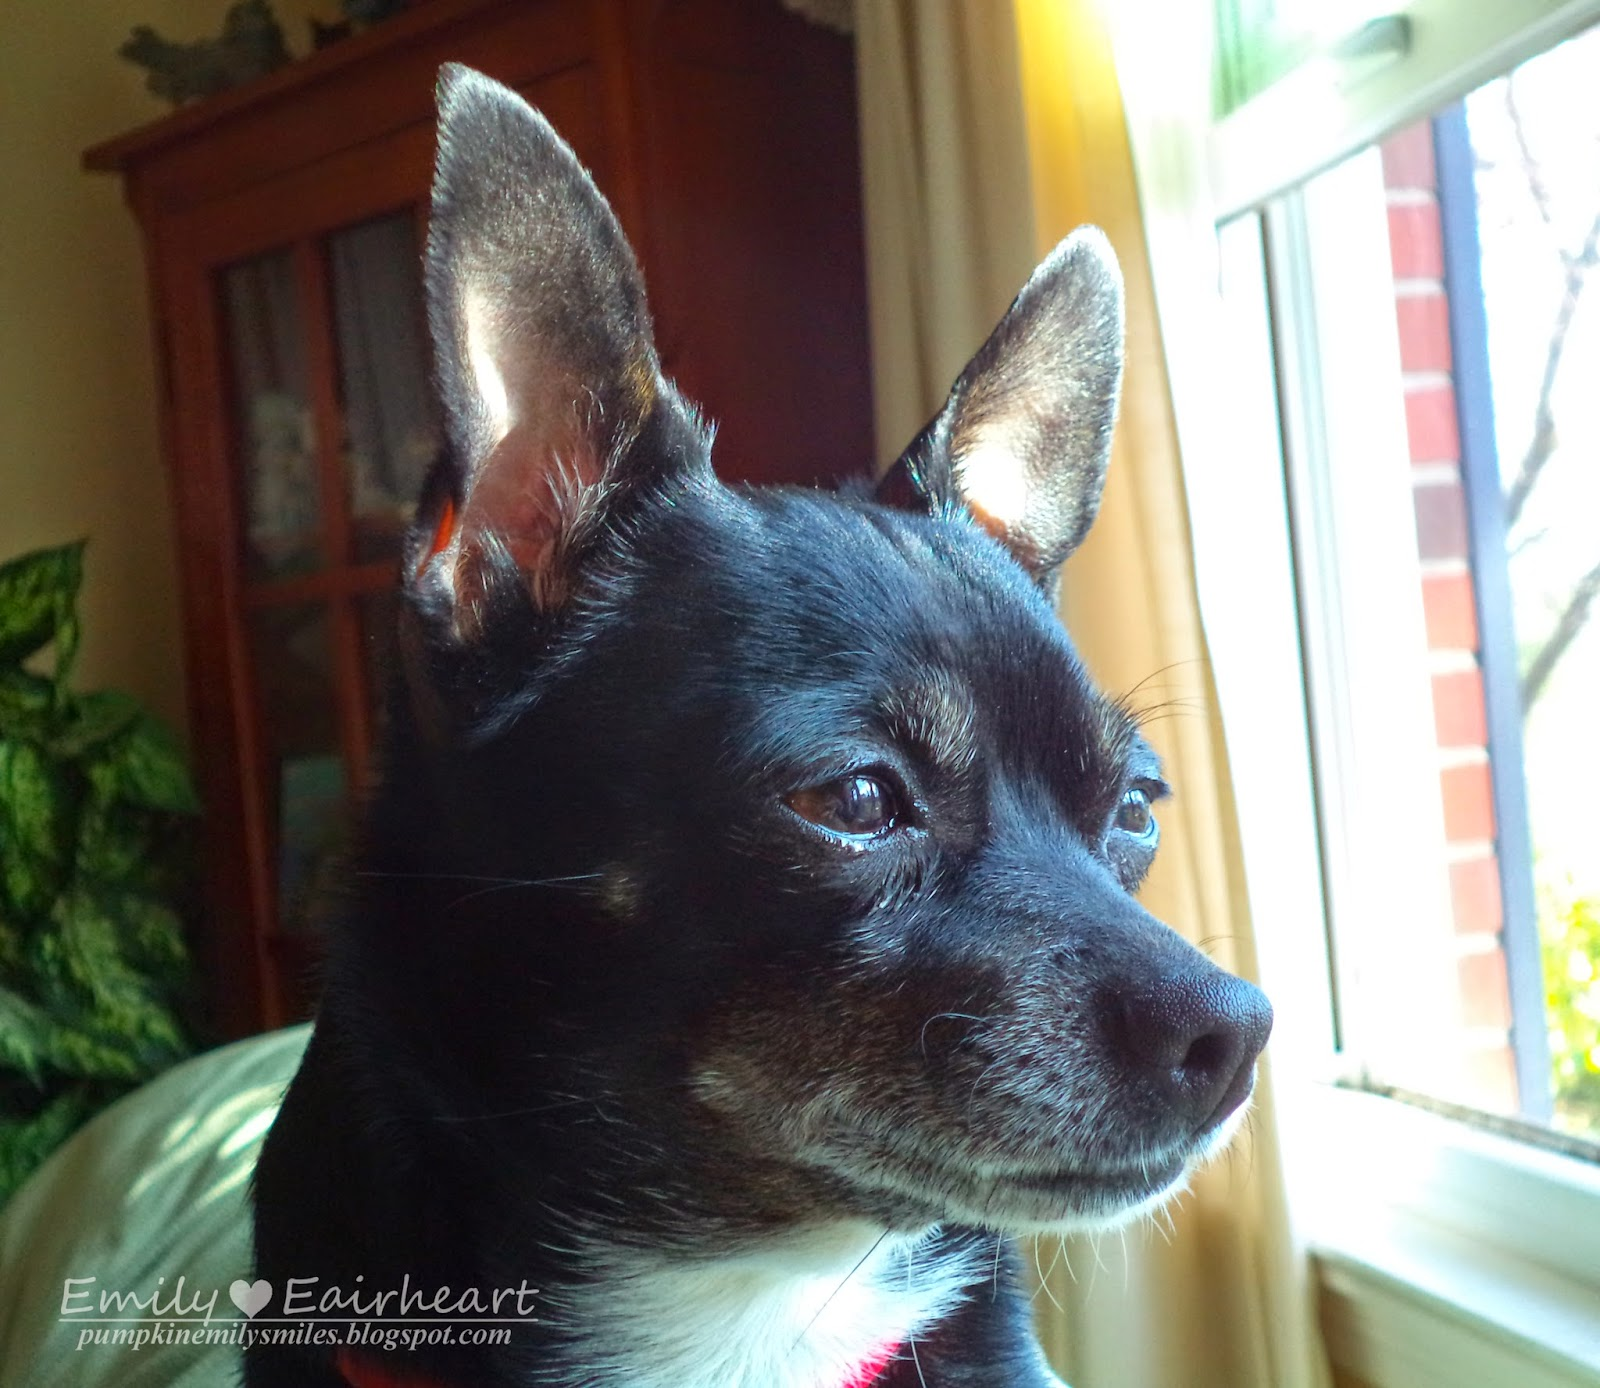 Another picture of Minnie, Chihuahua, sitting on top of couch watching for enemies at a different angle.